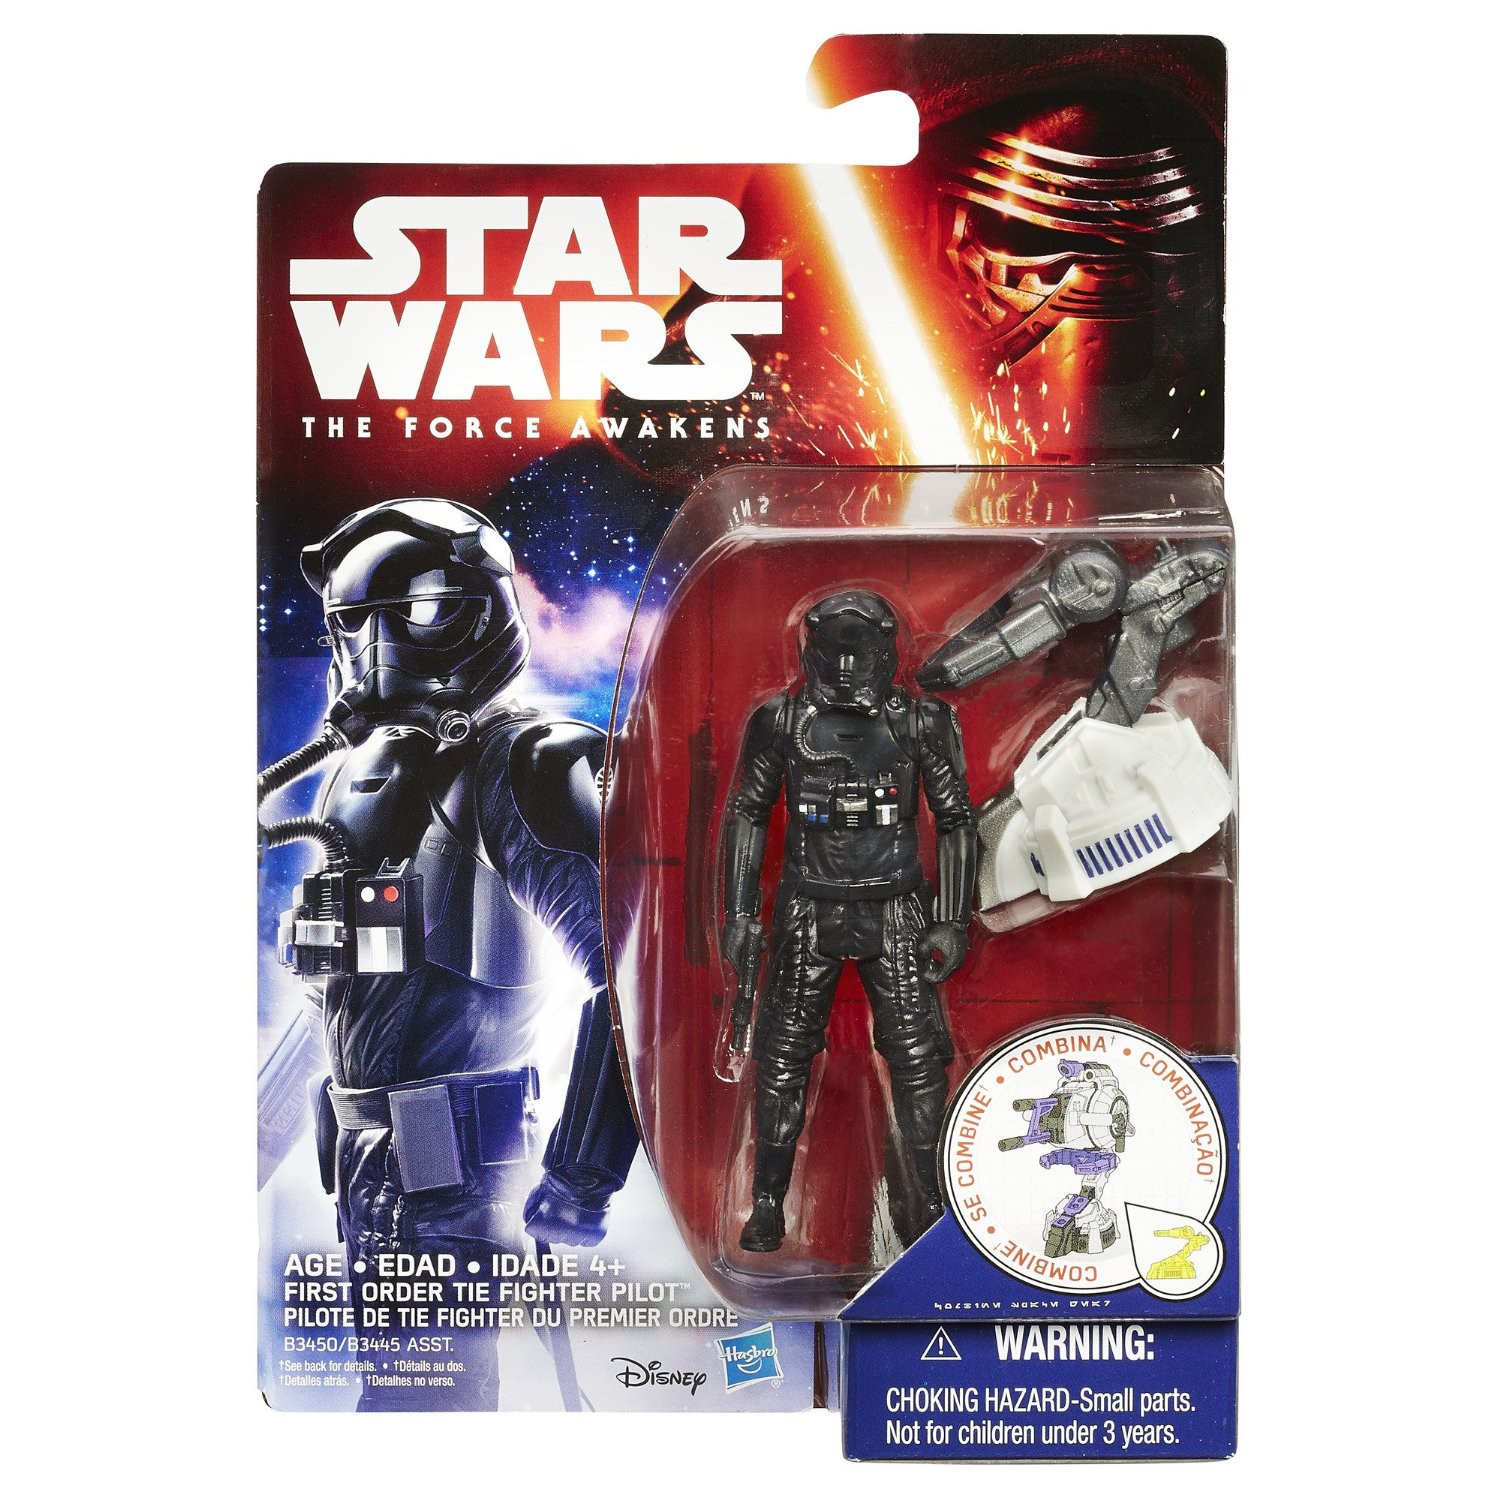 The Fighter Pilot Star Wars Action Figure